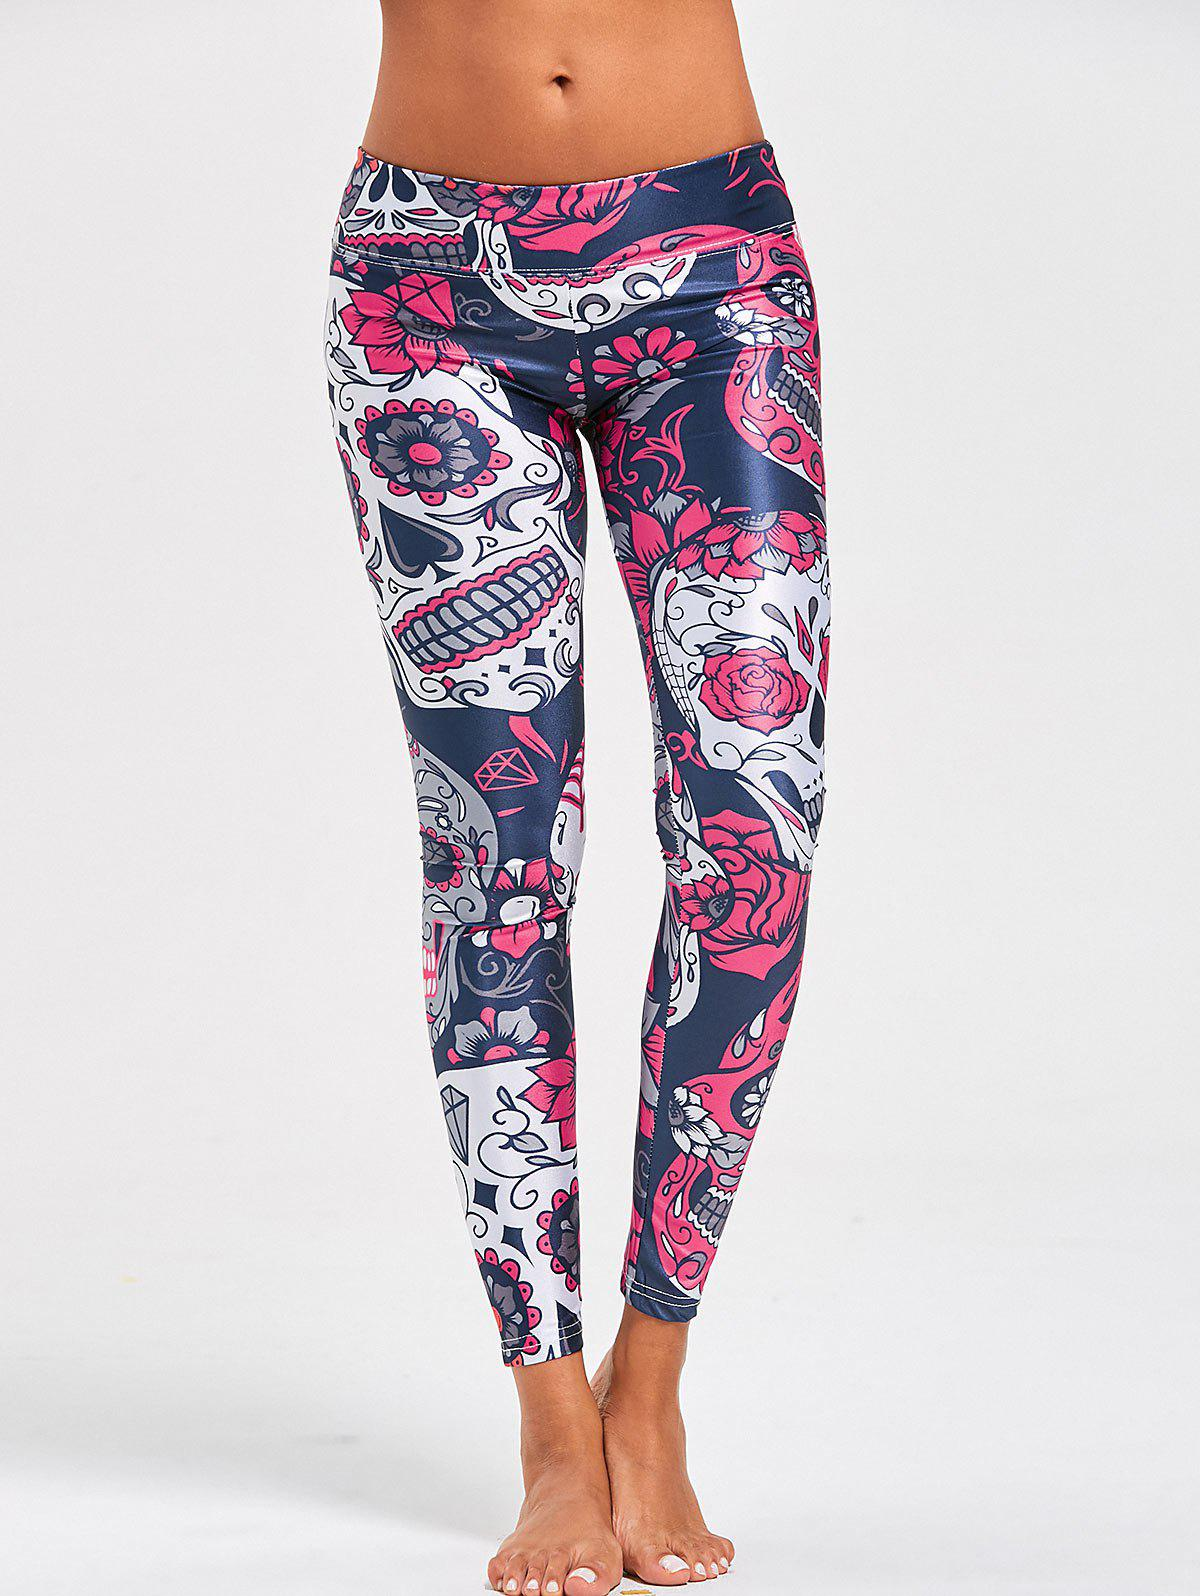 High Waist Halloween Floral Skull Print LeggingsWOMEN<br><br>Size: XL; Color: COLORMIX; Style: Casual; Material: Polyester; Waist Type: High; Pattern Type: Floral,Skull; Weight: 0.2200kg; Package Contents: 1 x Leggings;